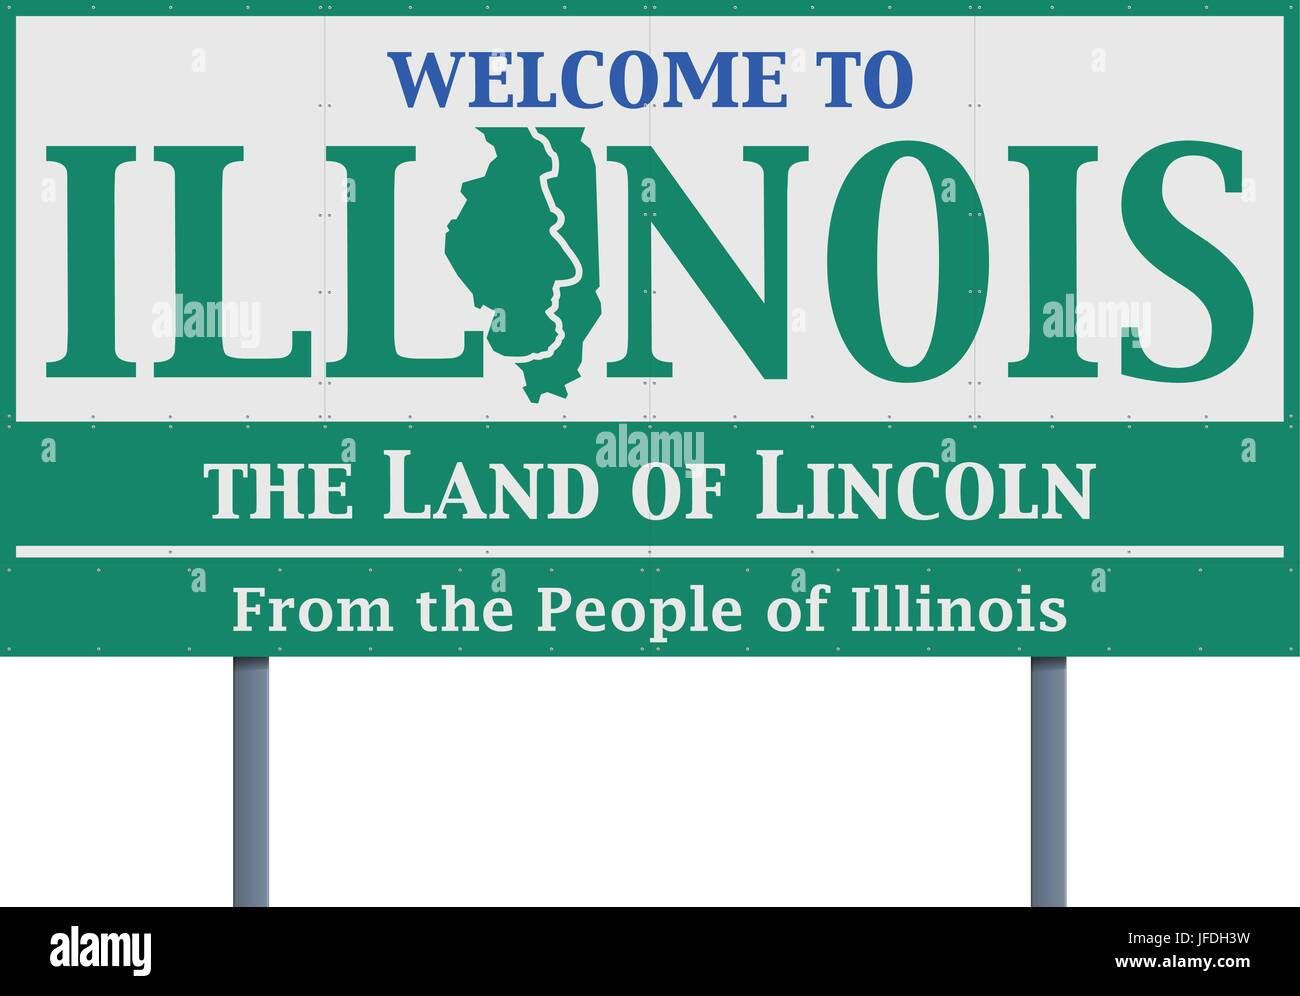 Welcome to illinois sign stock photos welcome to illinois sign vector illustration of the welcome state of illinois road sign stock image kristyandbryce Images